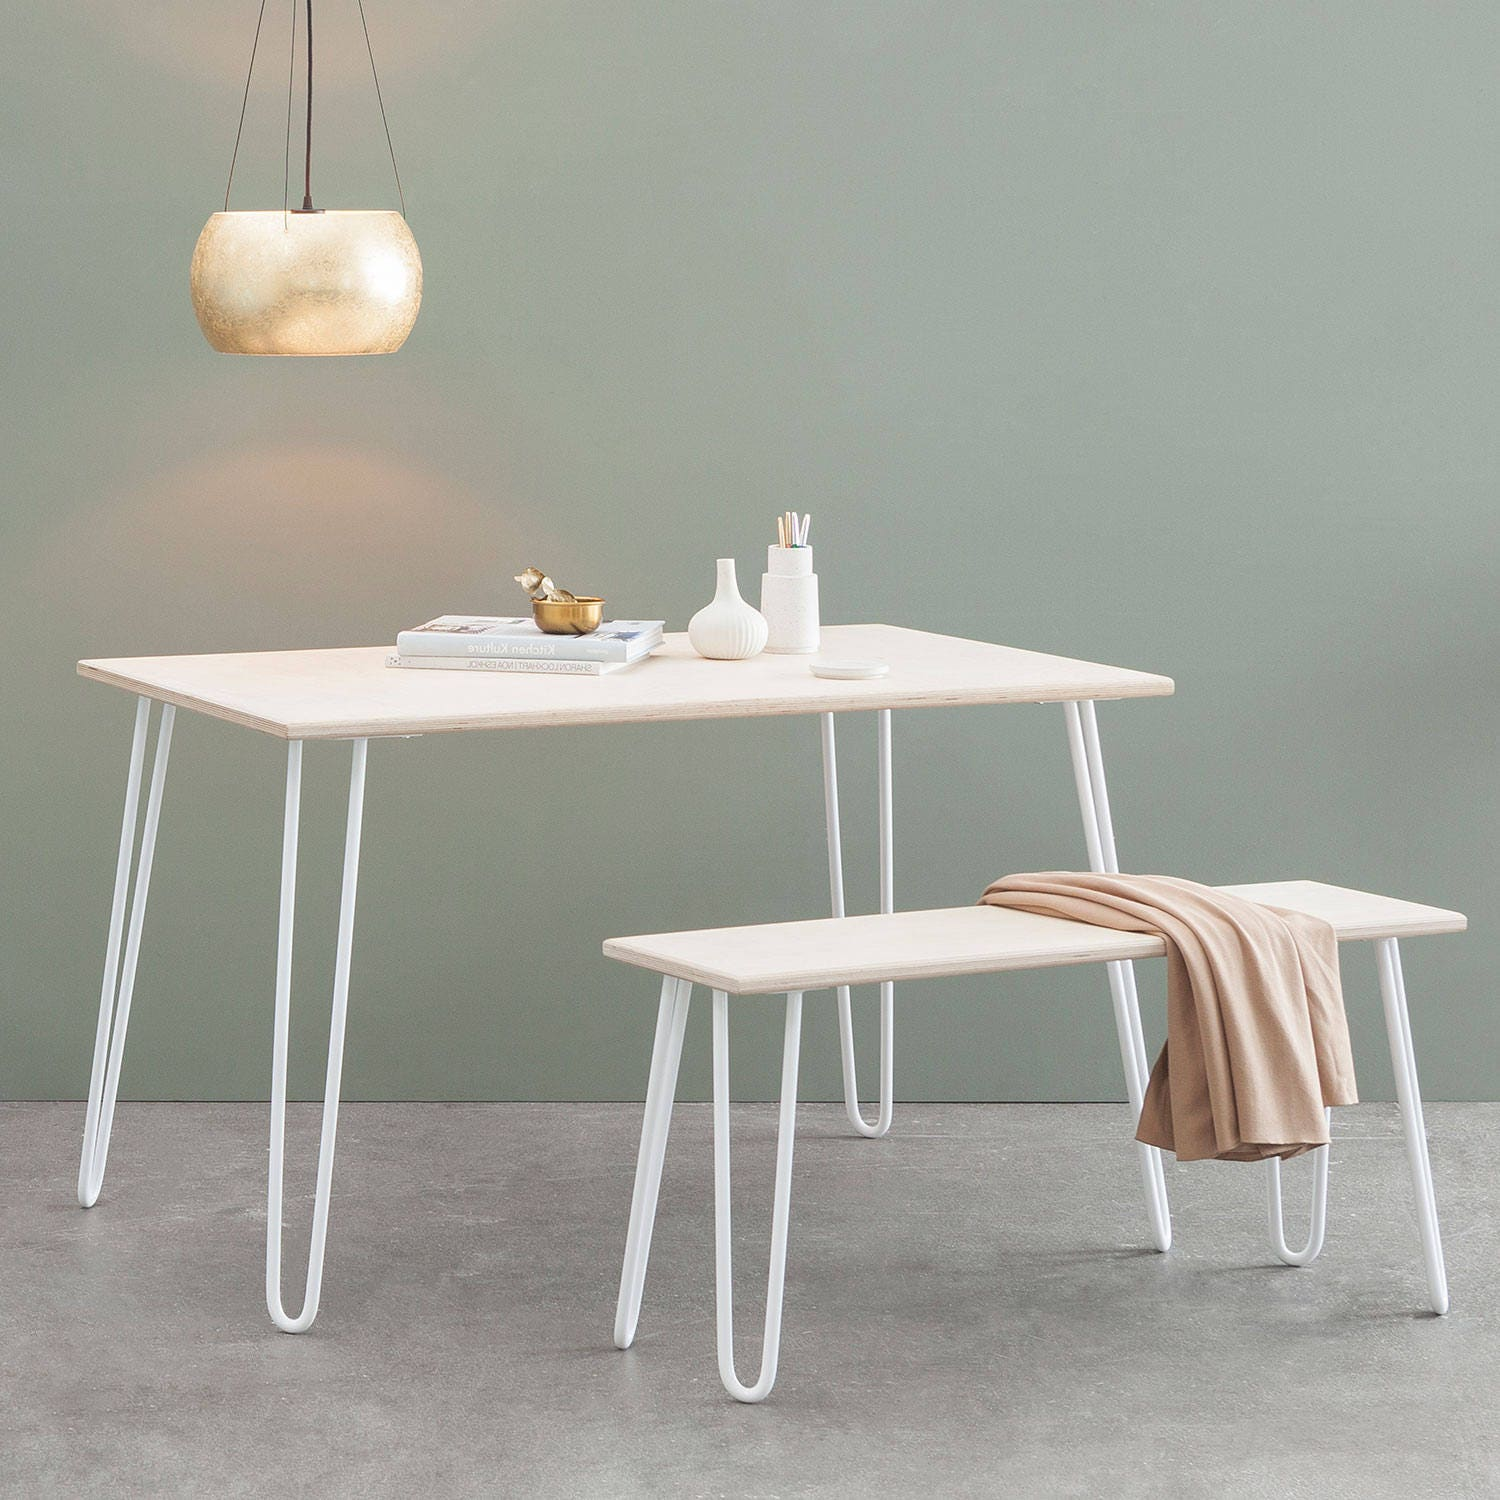 Dining table birch plywood hairpin legs eames mid century for Plywood table hairpin legs